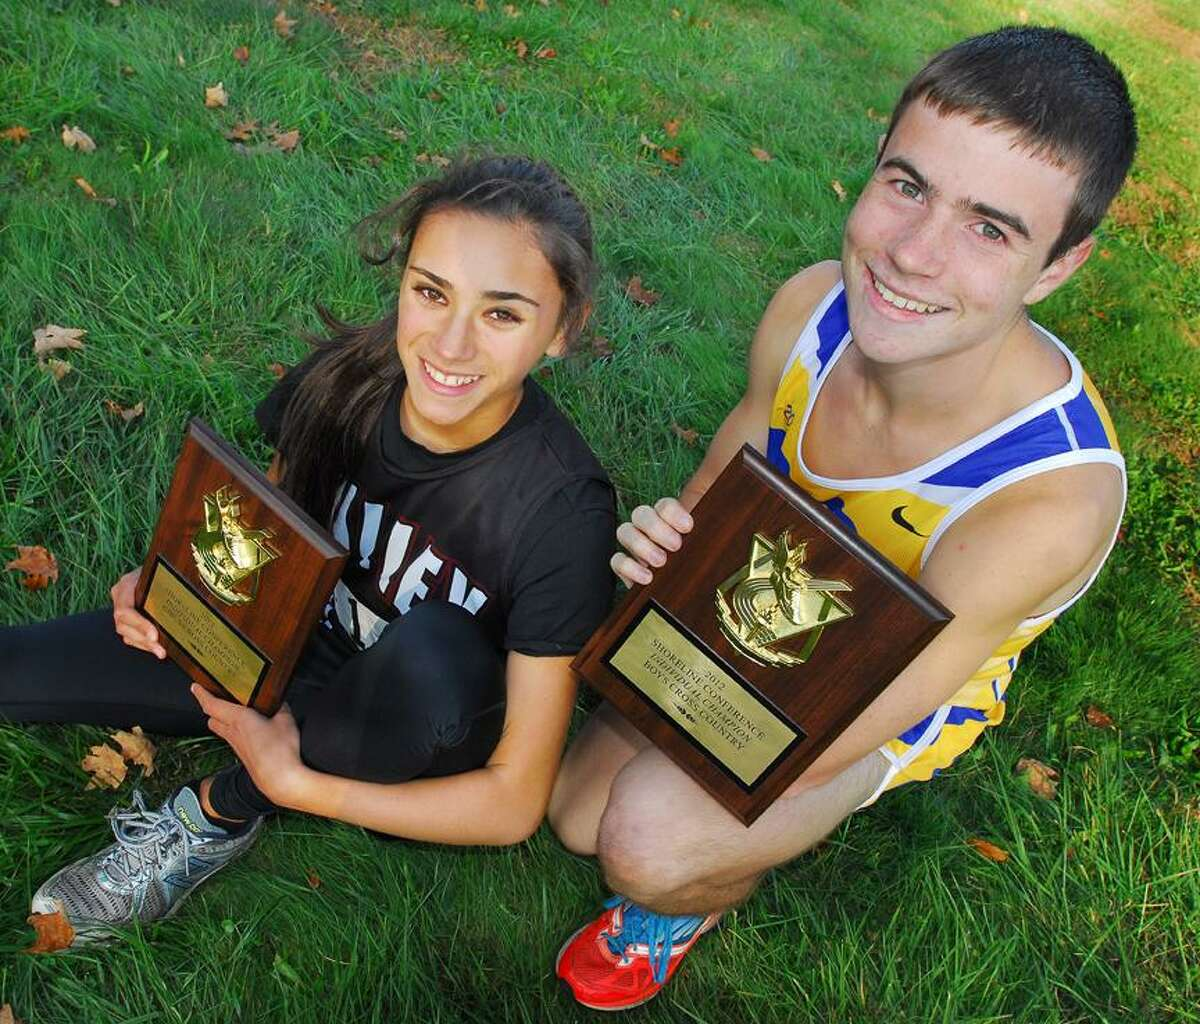 CATHERINE AVALONE/THE MIDDLETOWN PRESSValley Regional sophomore Samantha McKosky ran a 19:02.5 and Haddam-Killingworth senior Peter Brandon ran a 16:05.6 to place first individually at the Shoreline Cross Country Championships Thursday afternoon at John Winthrop Middle School in Deep River.